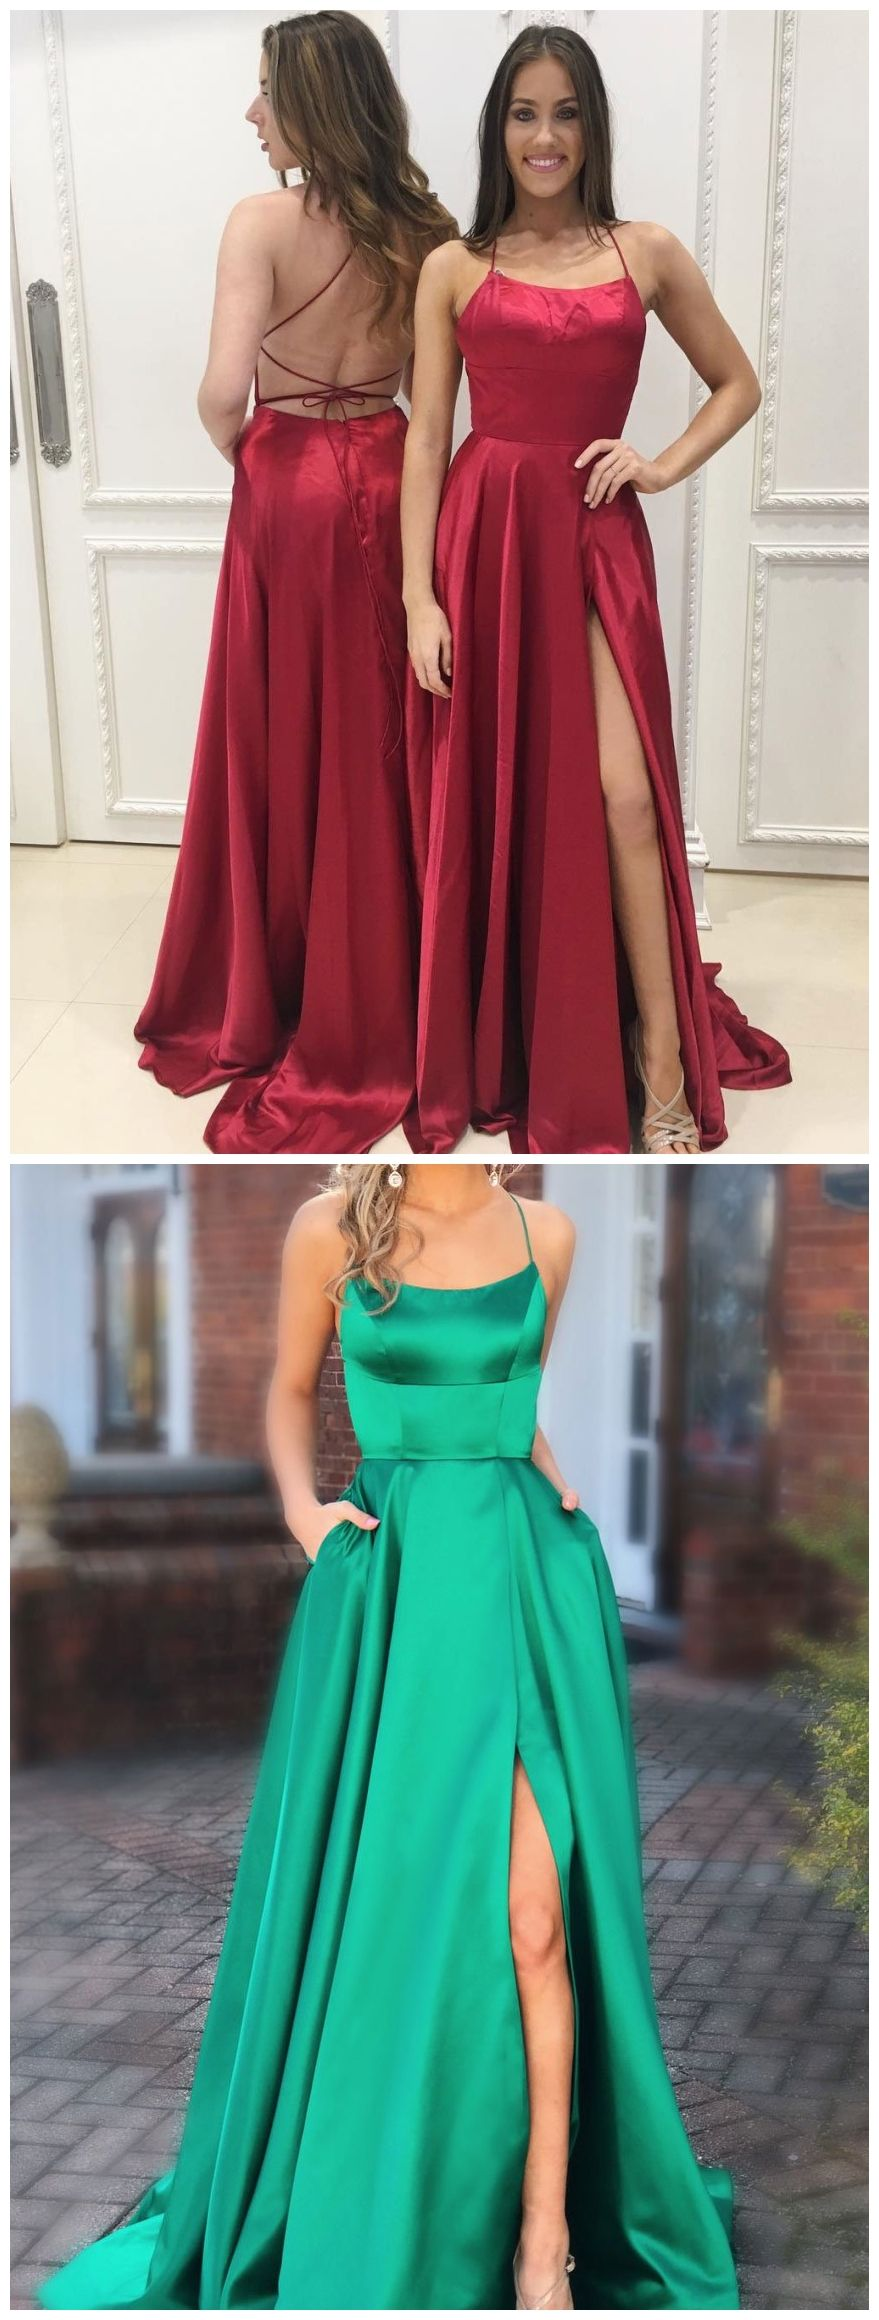 Backless prom dressesburgundy prom dresses green prom dresses